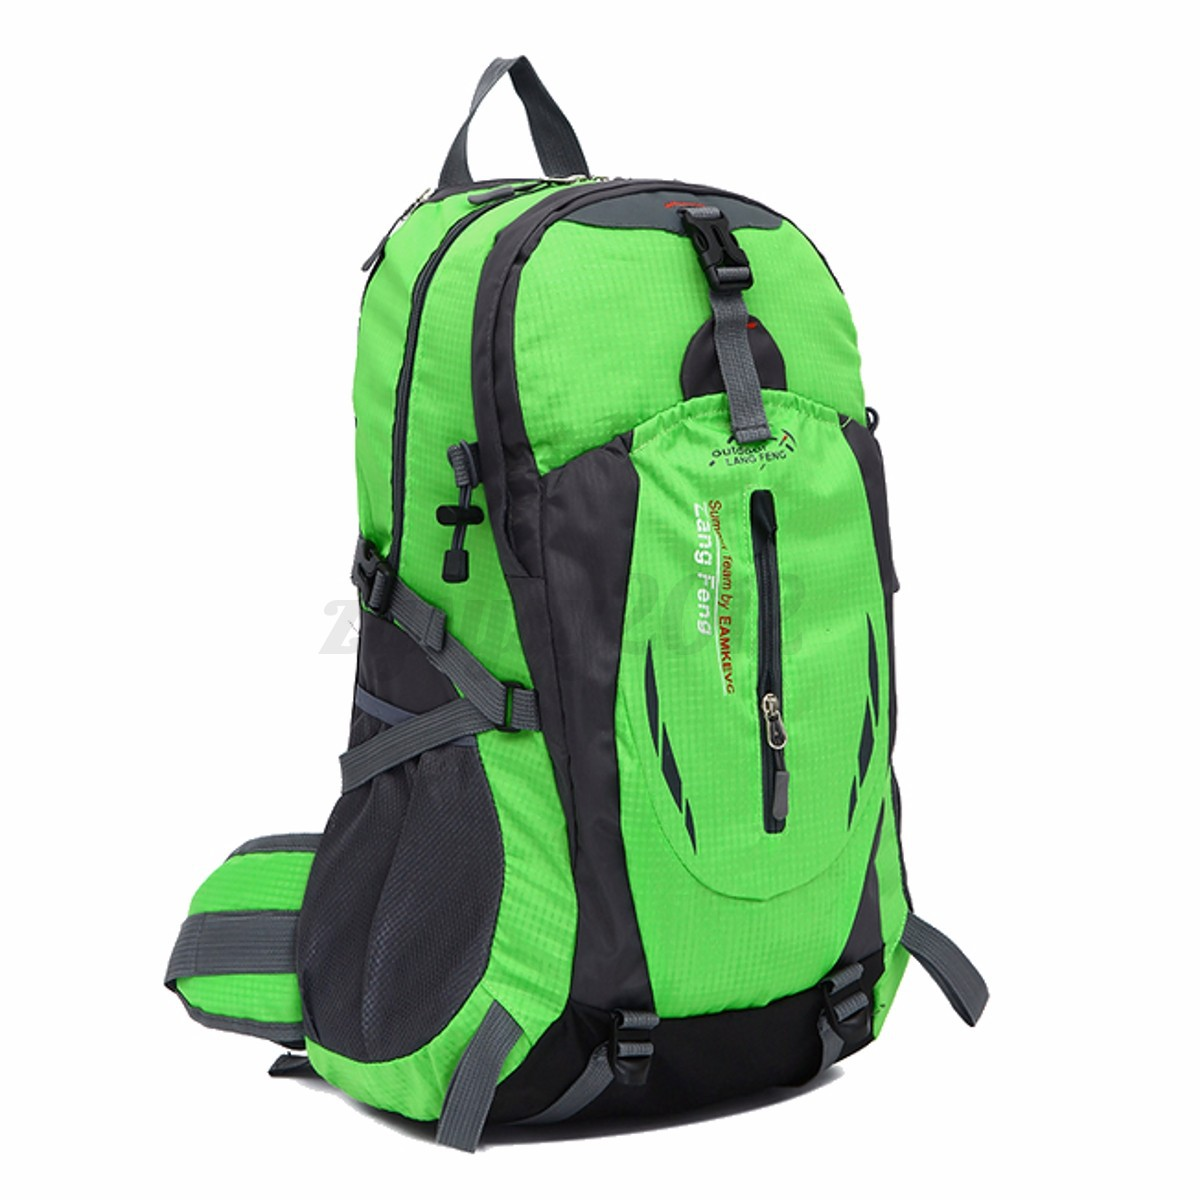 35l Rucksack 35l Backpack Rucksack Bag Hiking Outdoor Waterproof